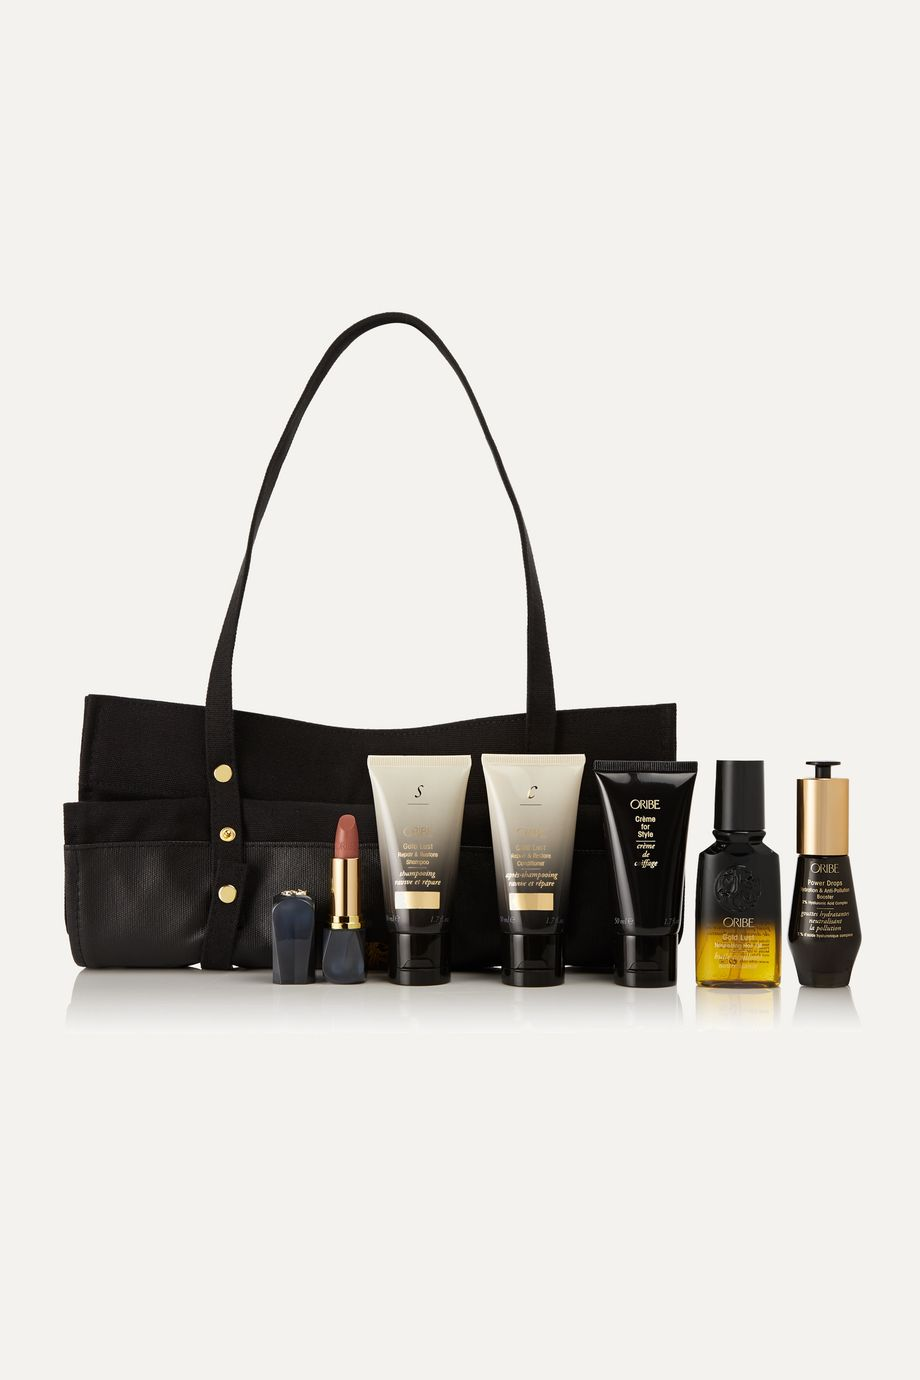 Oribe Gold Lust Travel Set